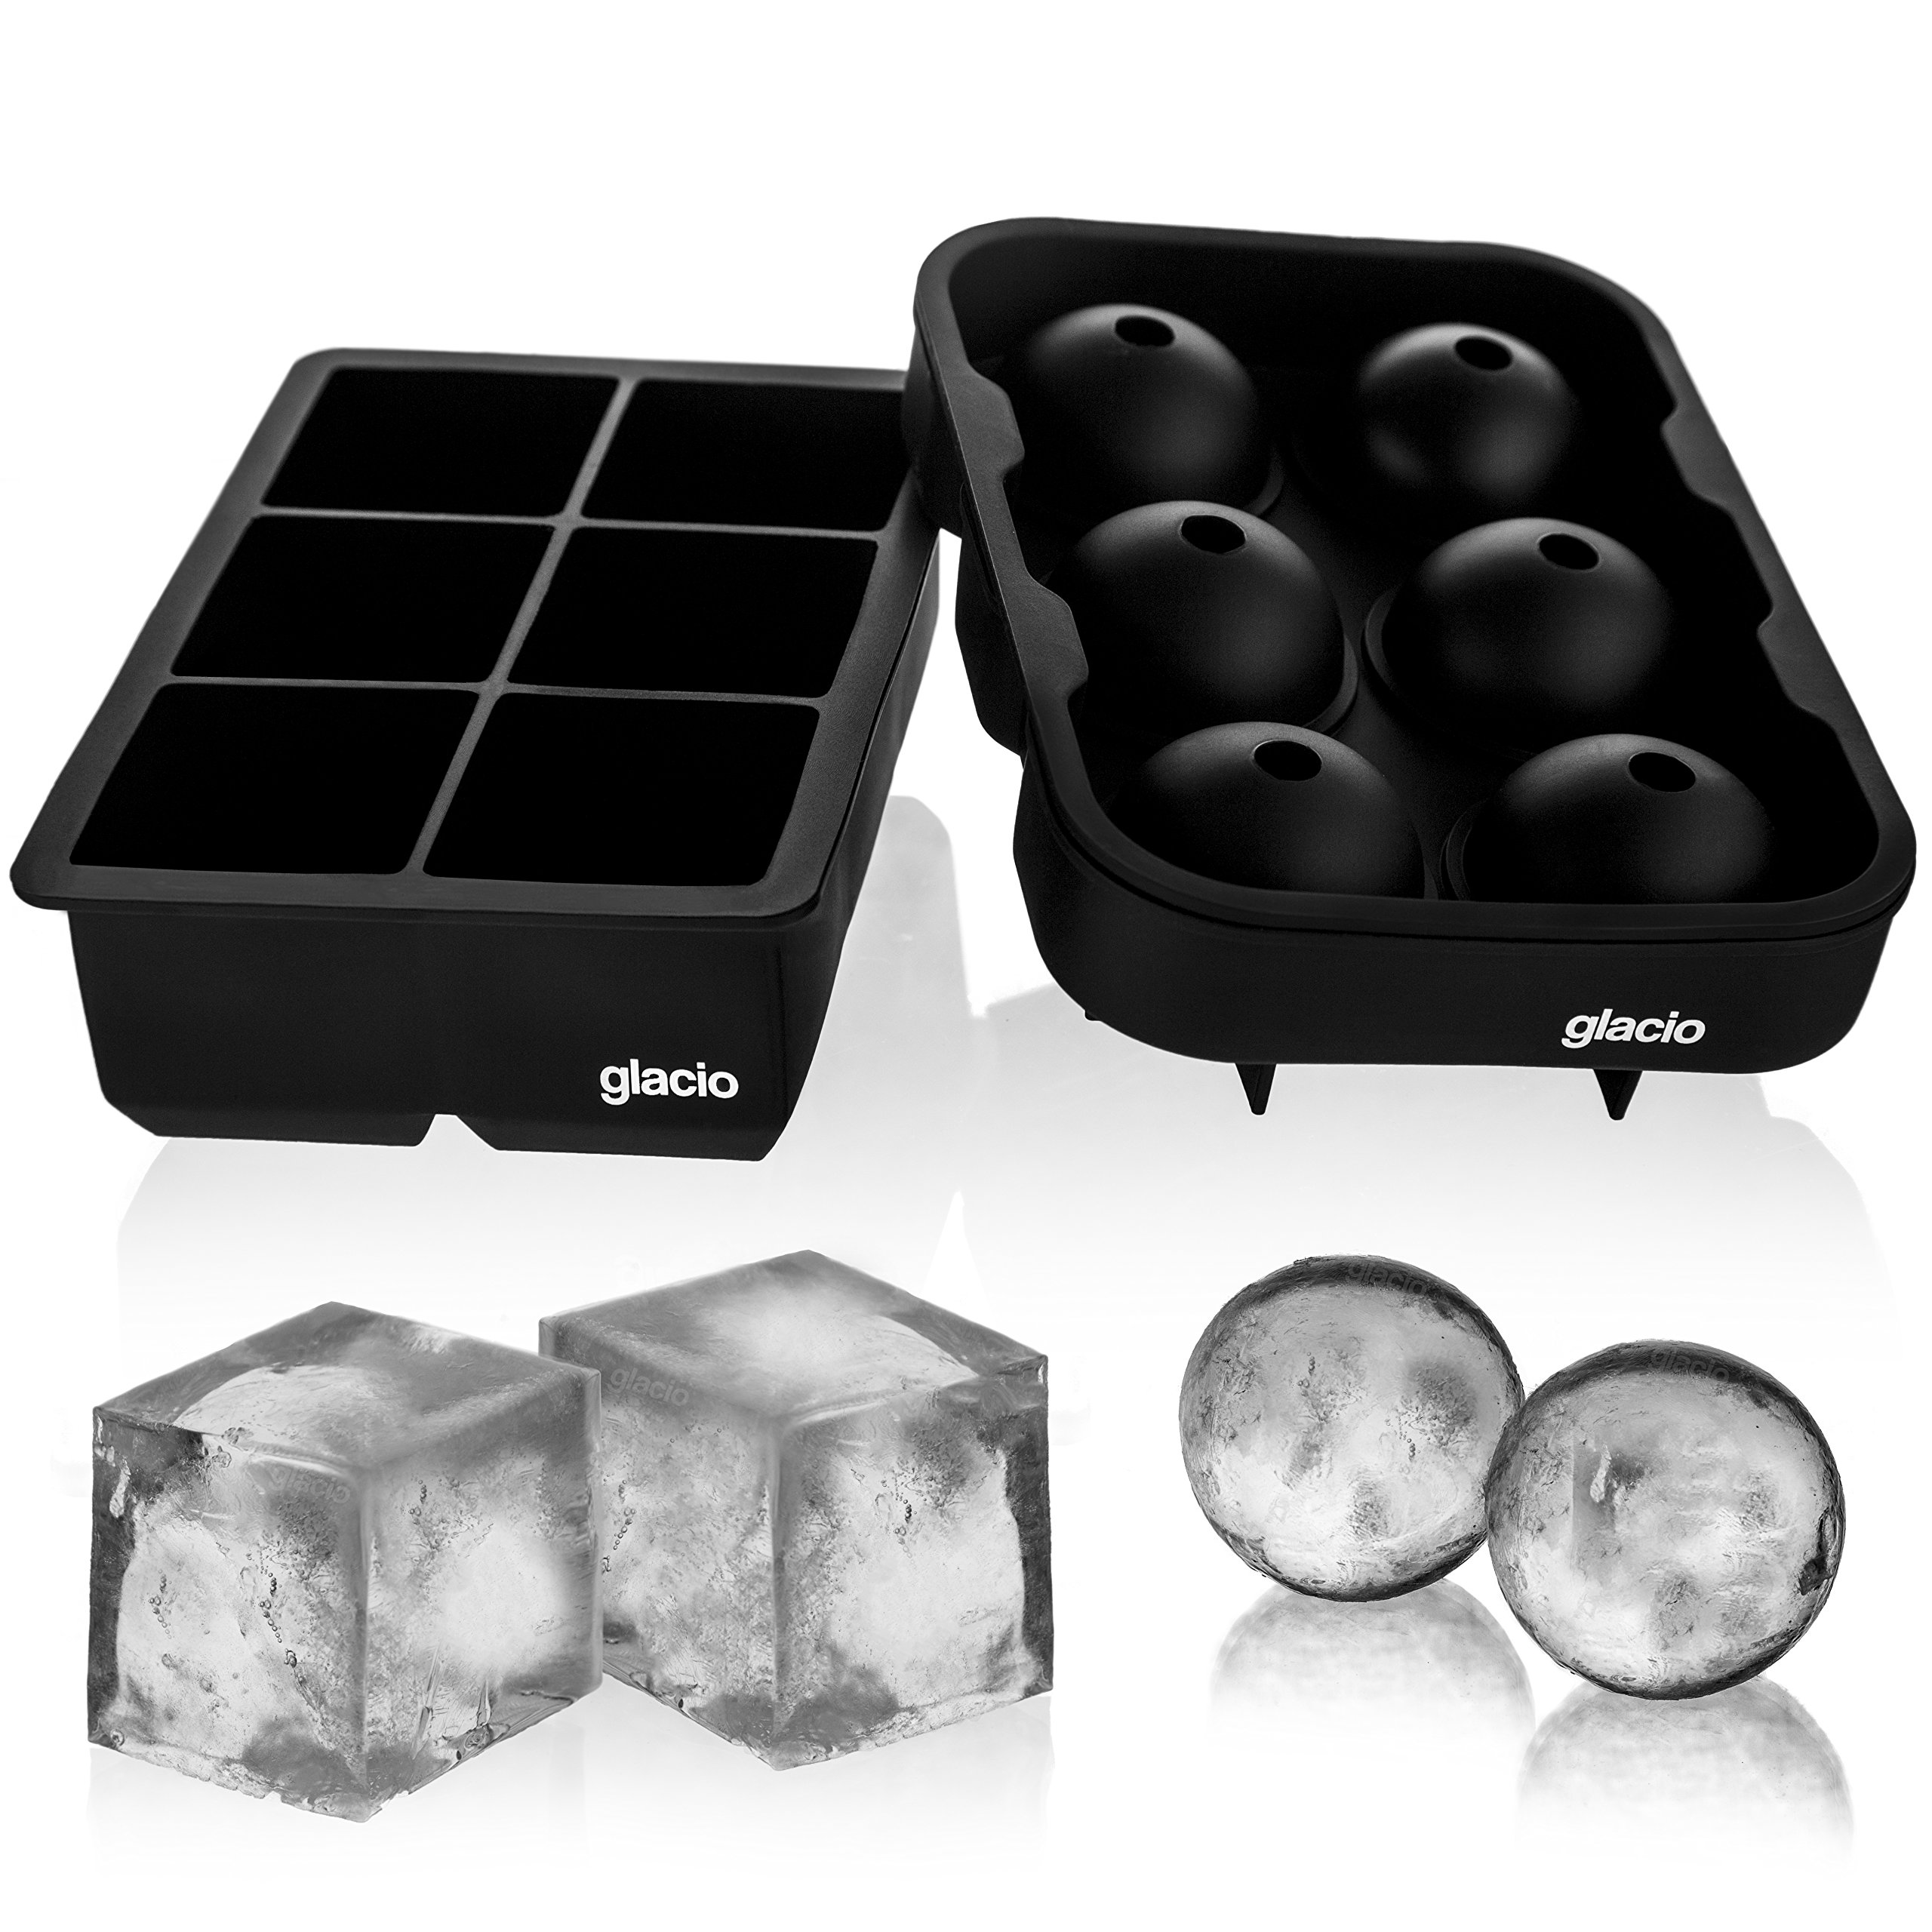 glacio Ice Cube Trays Silicone Combo Mold - Set of 2, Sphere Ice Ball Maker with Lid & Large Square Molds, Reusable and BPA Free by glacio